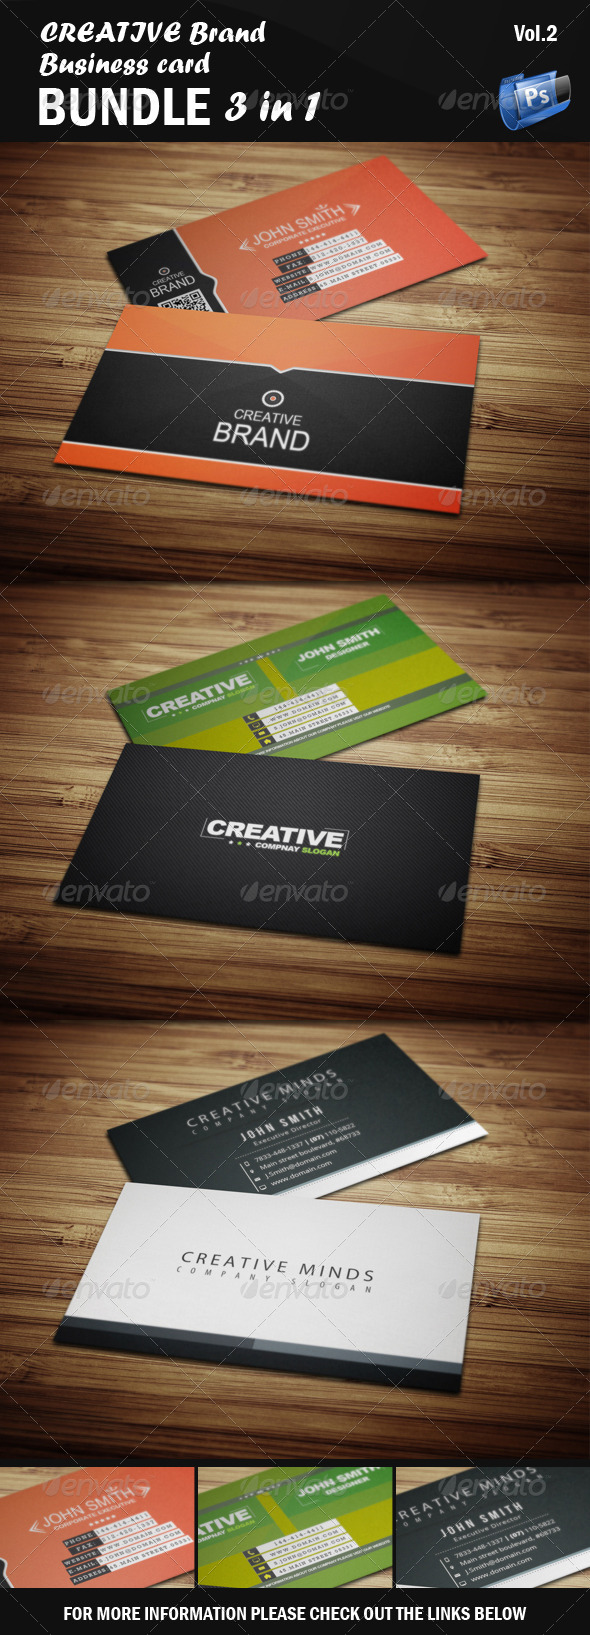 Creative Business Card Bundle 3 in 1 [Vol.2]